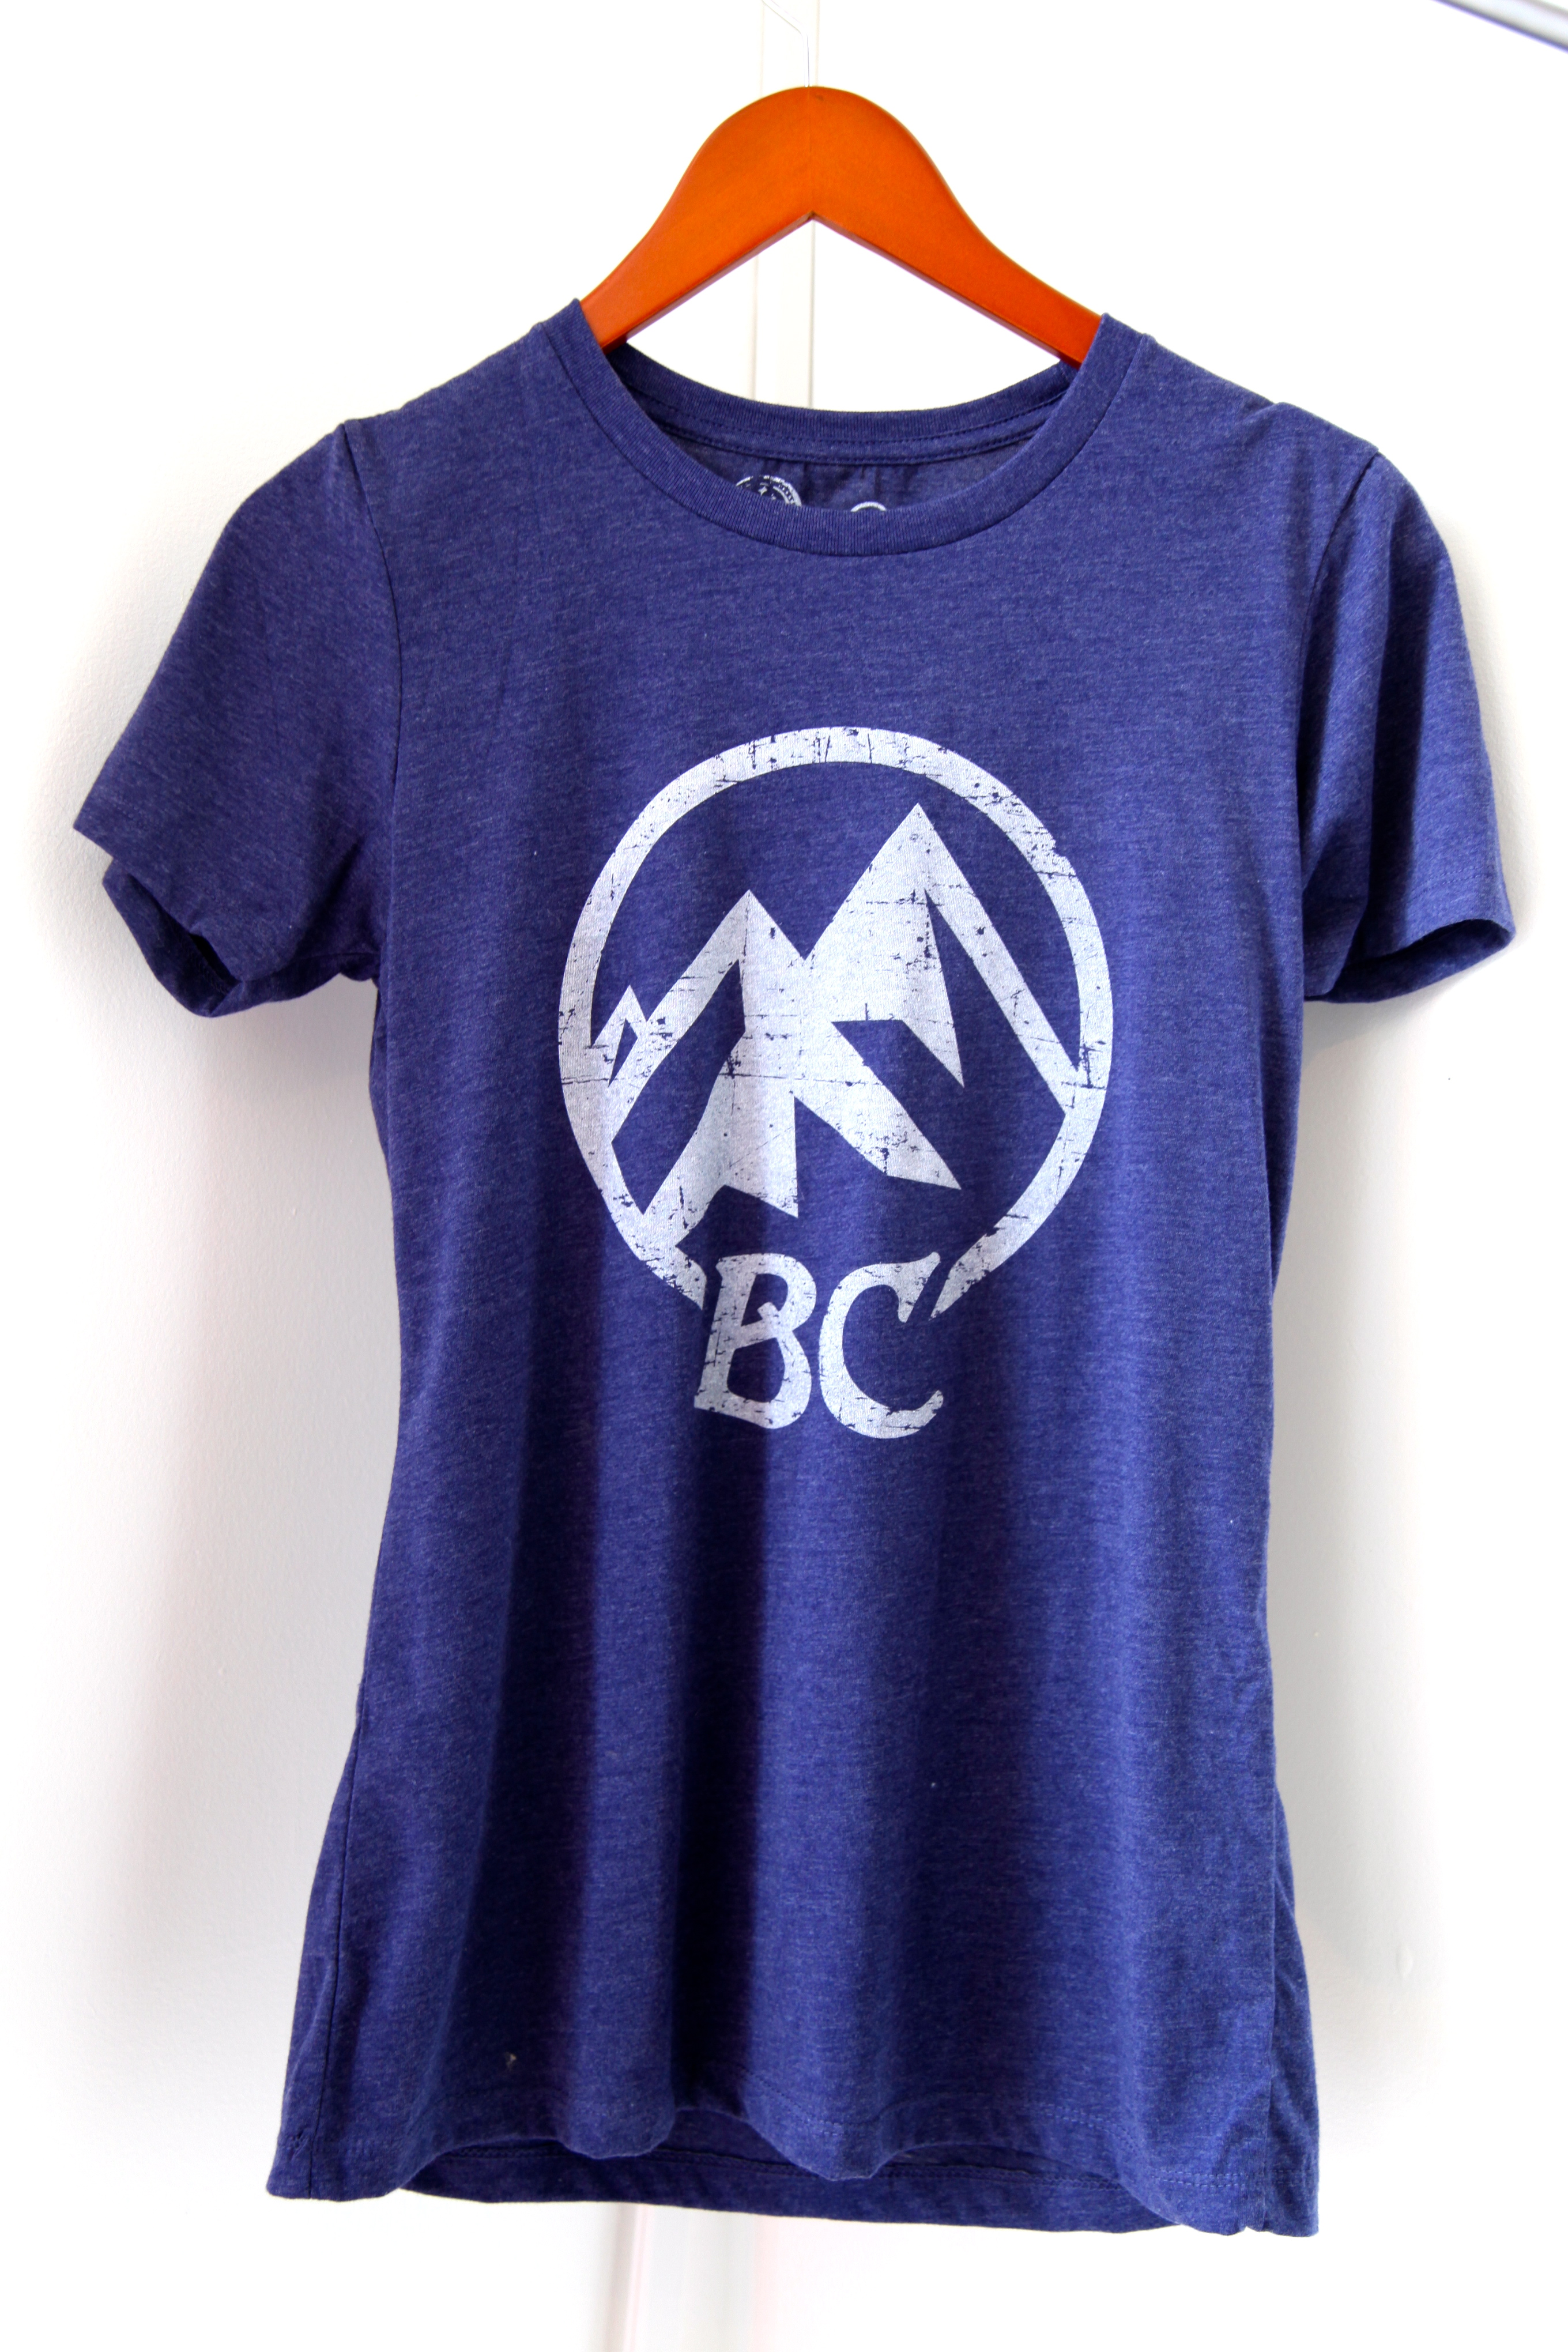 Cool thing we want 350 bc t shirt from forsya on main st for Vancouver t shirt printing